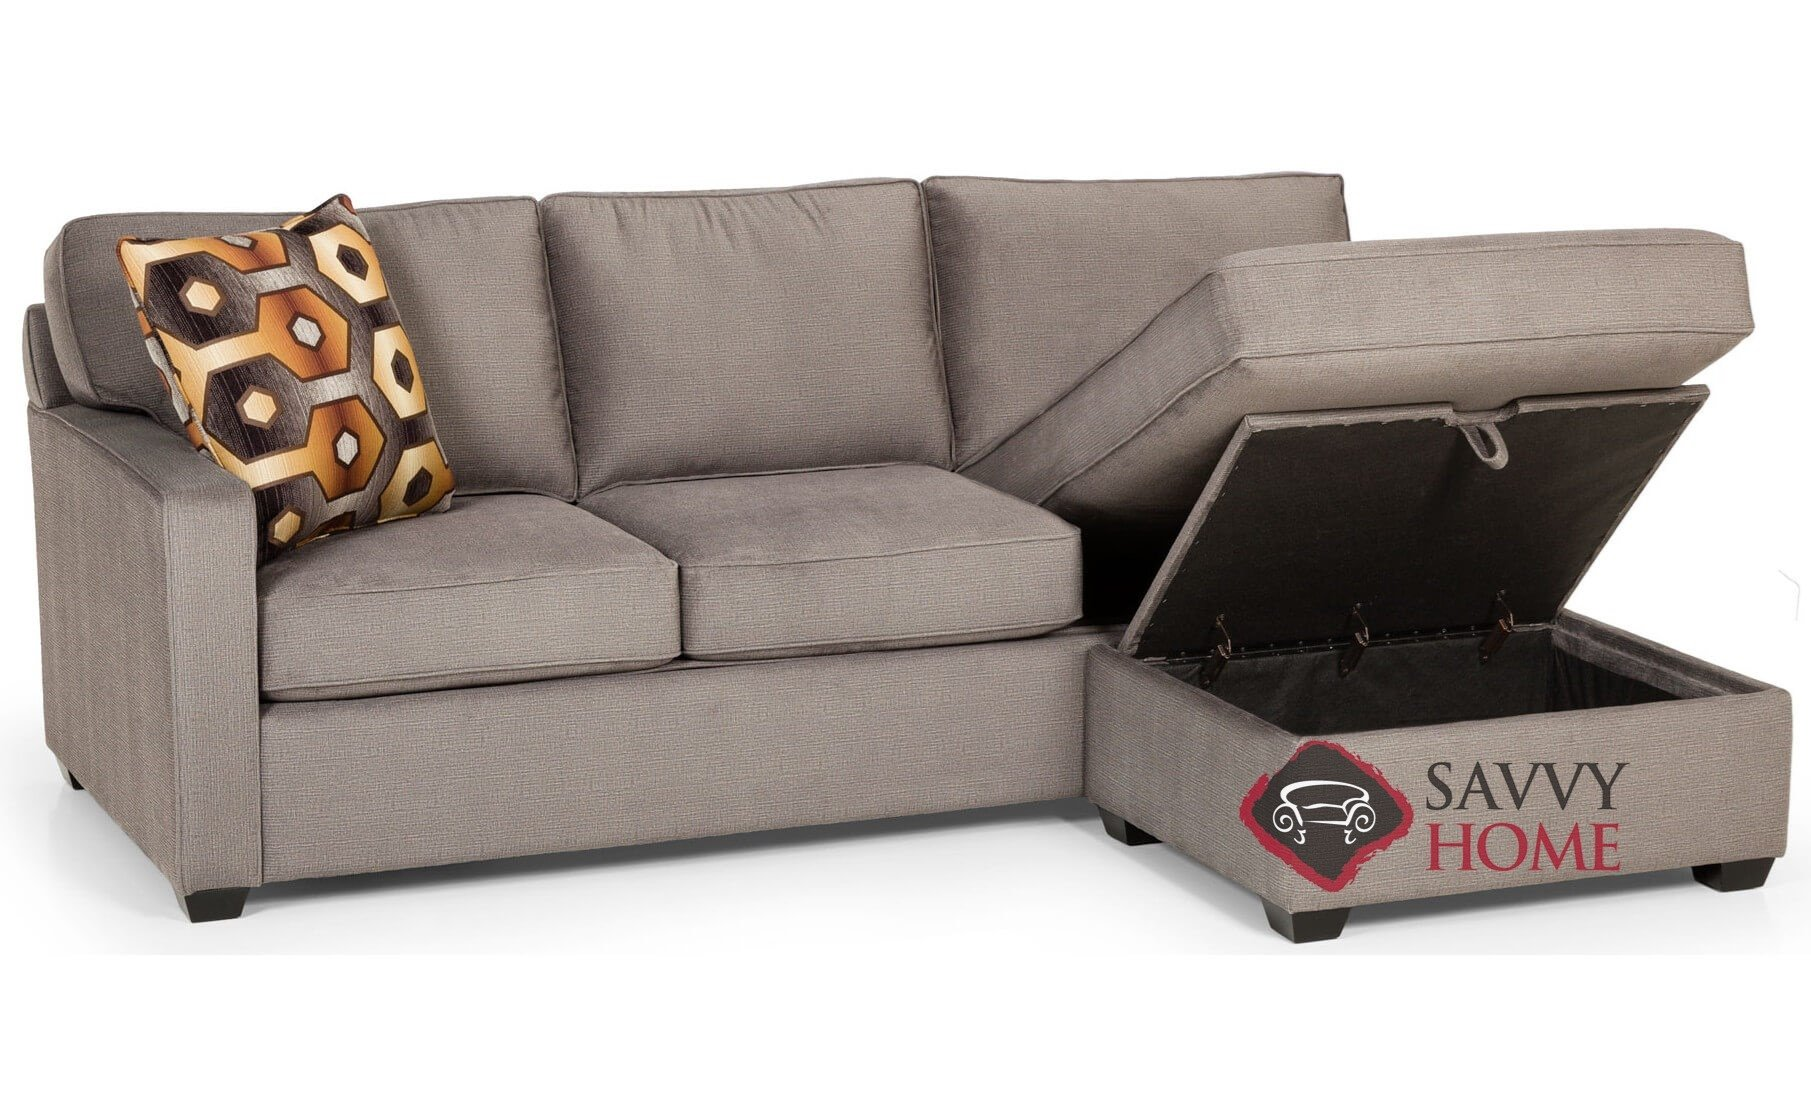 403 Fabric Sleeper Sofas Chaise Sectional By Stanton Is